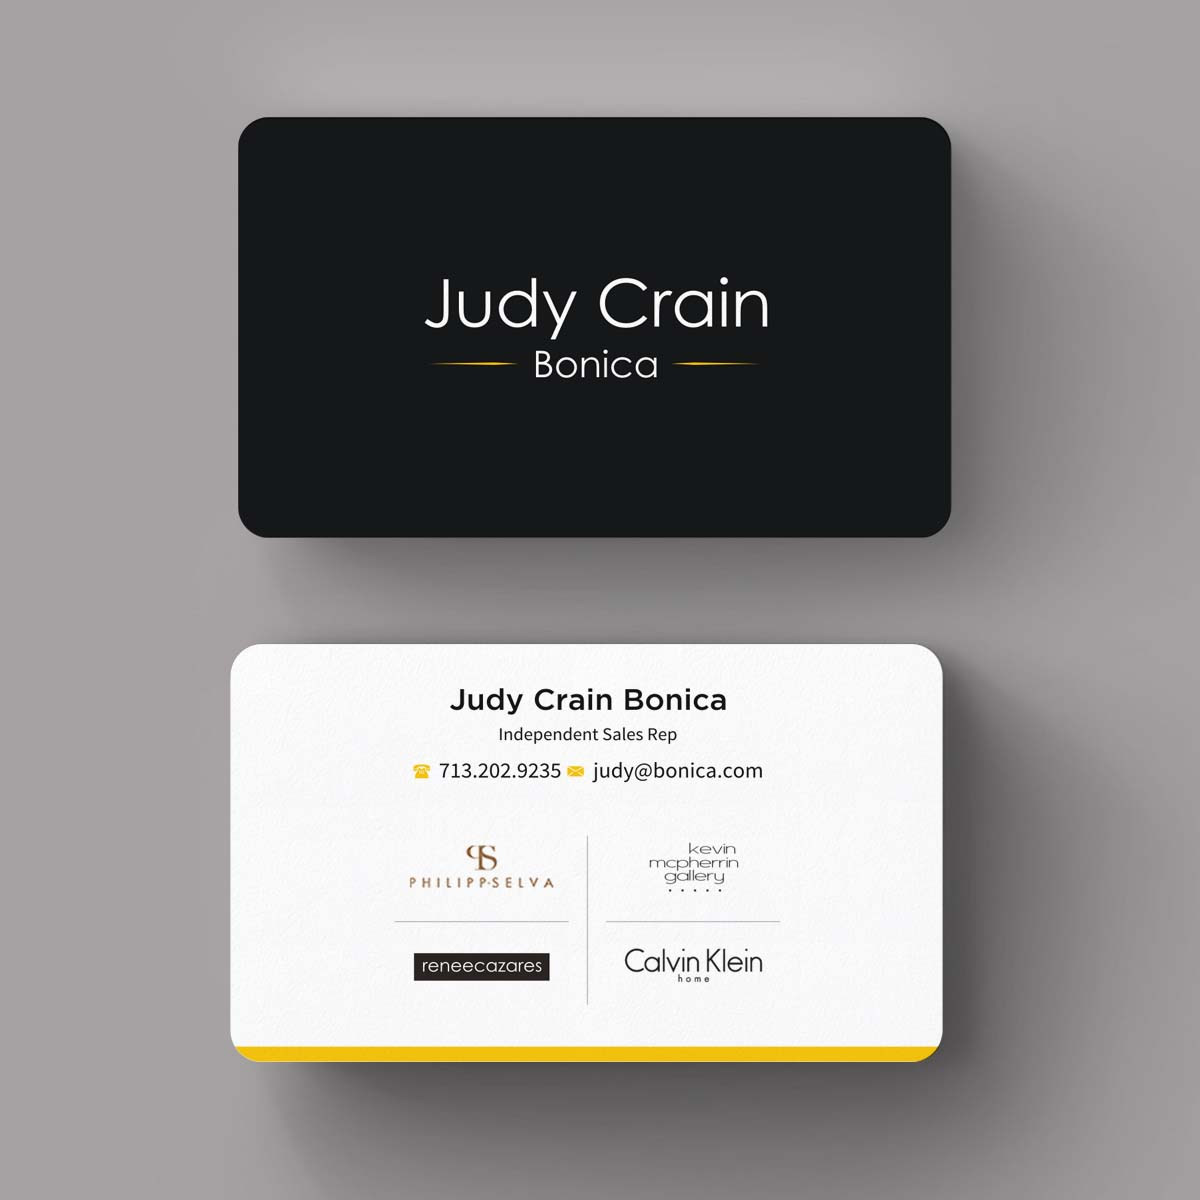 business card sle - 28 images - business card logos graphics, buy ...